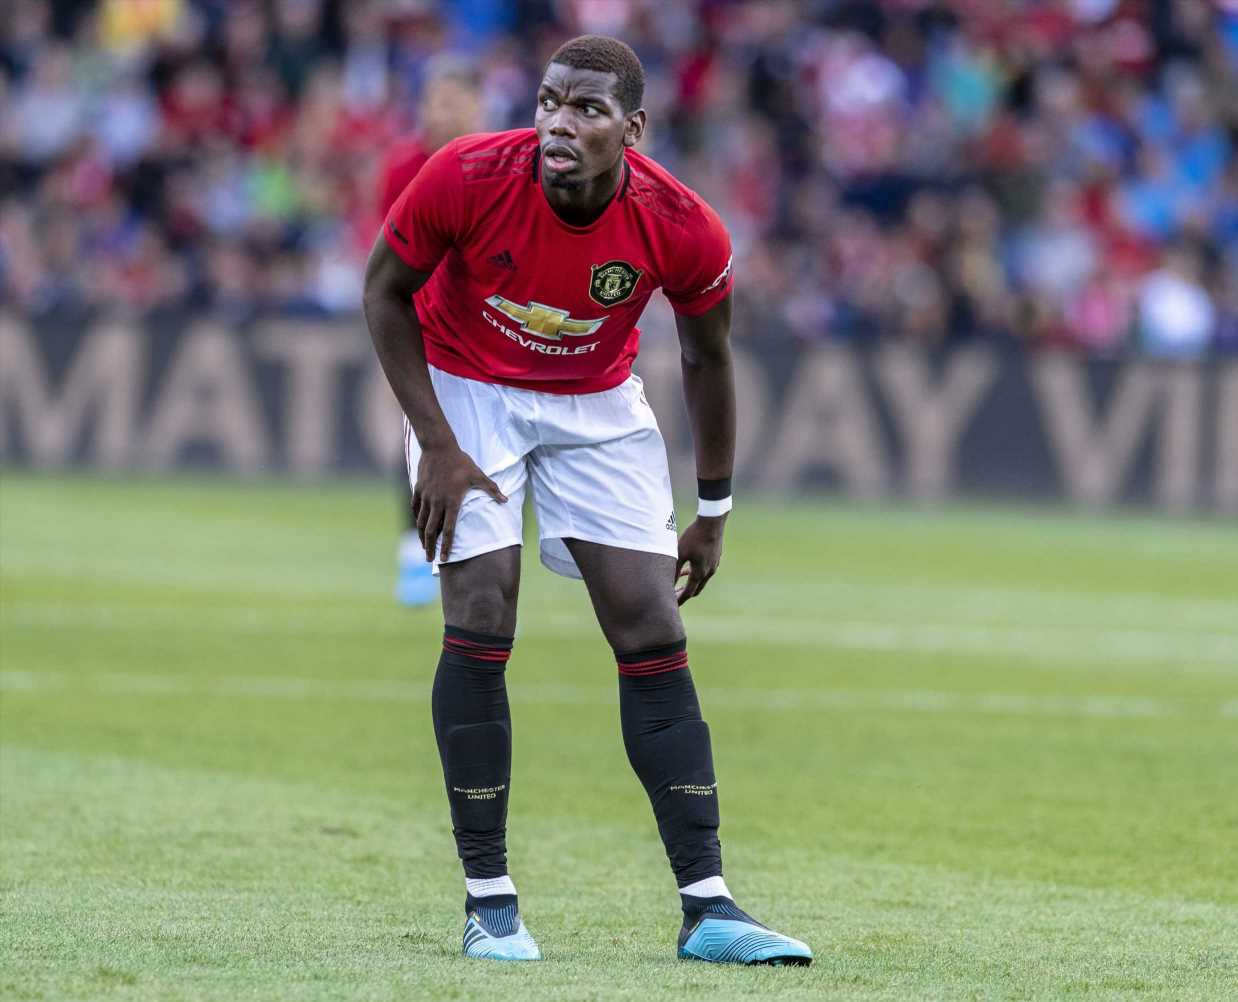 Paul Pogba will NOT play for Man Utd against AC Milan as Solskjaer confirms Lukaku, Sanchez, Darmian and Pereira also out – The Sun